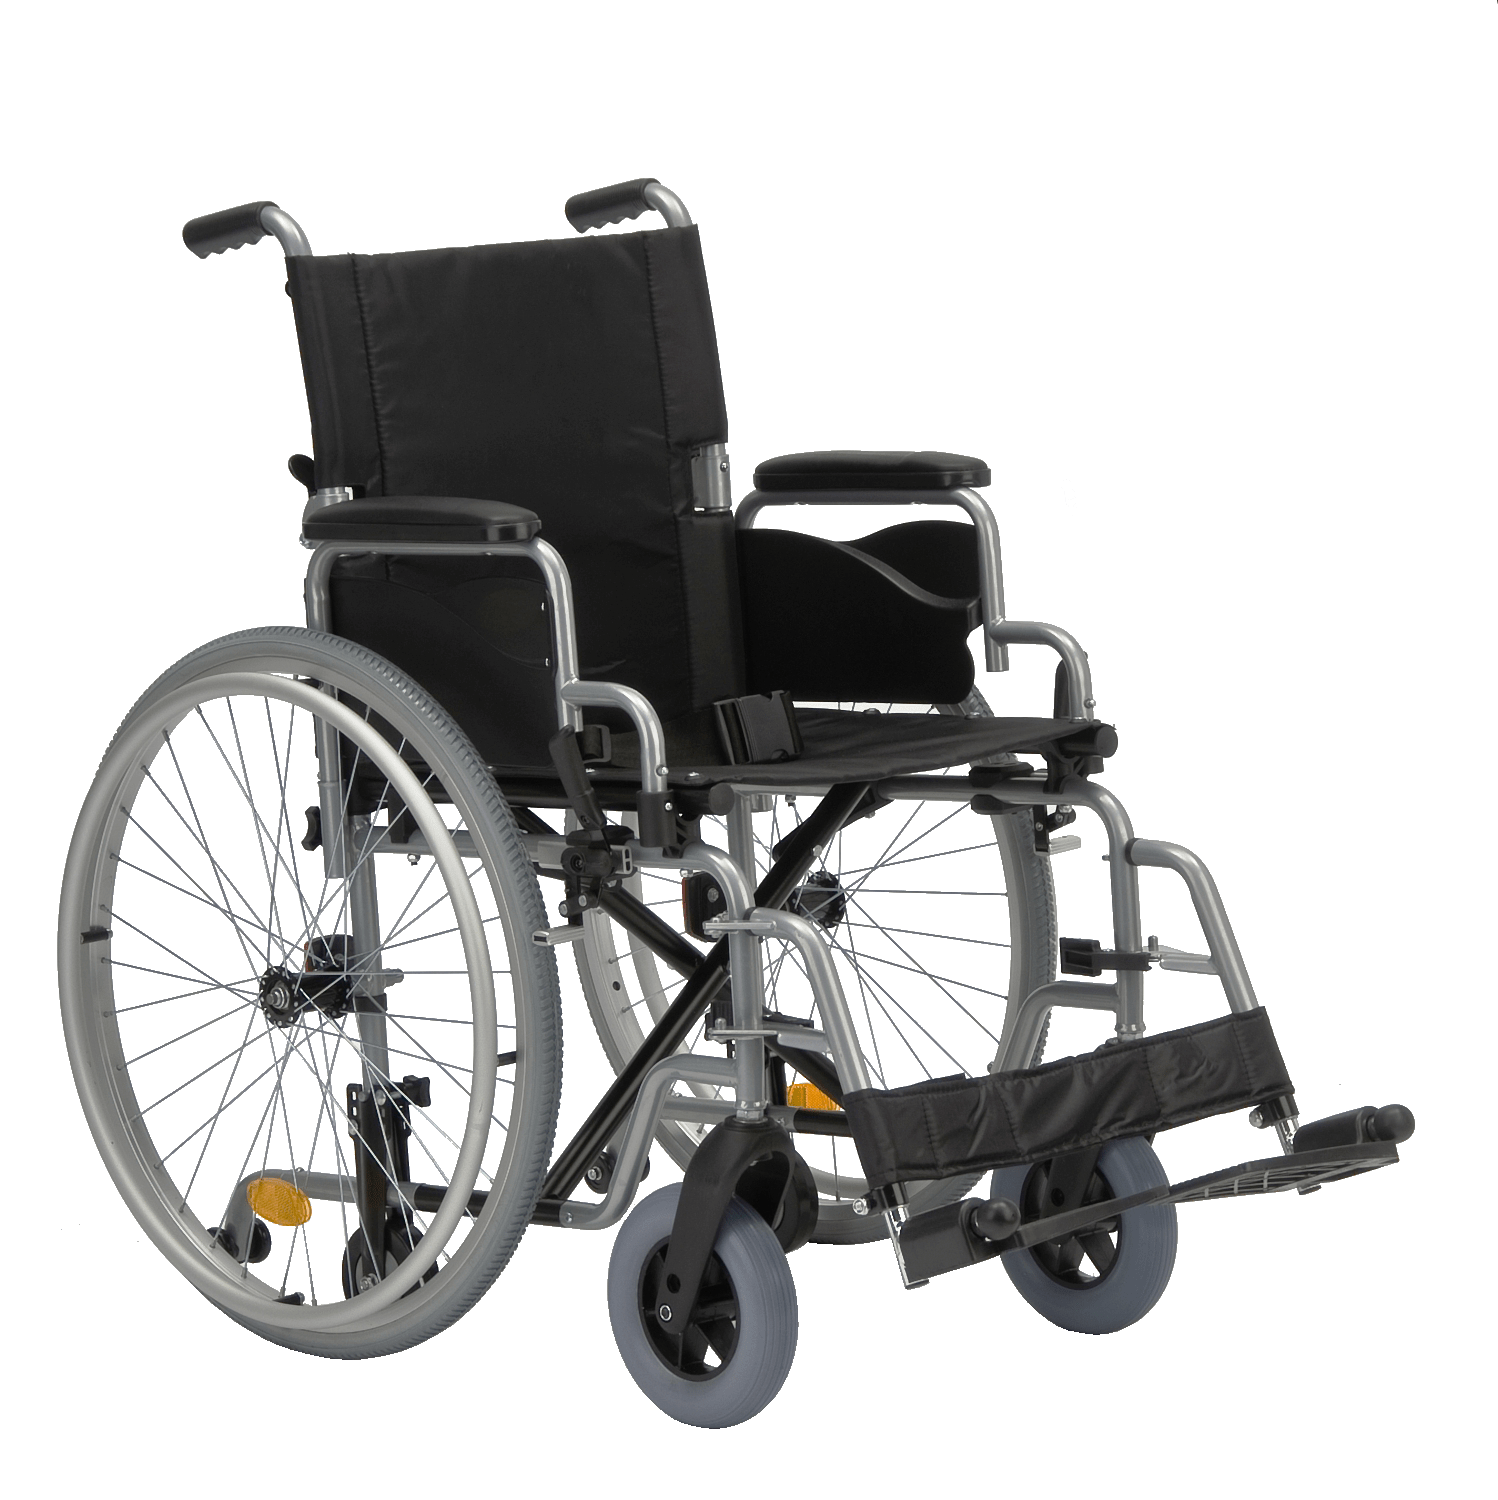 wheelchair size fitball exercise ball chair reviews wheel autos post